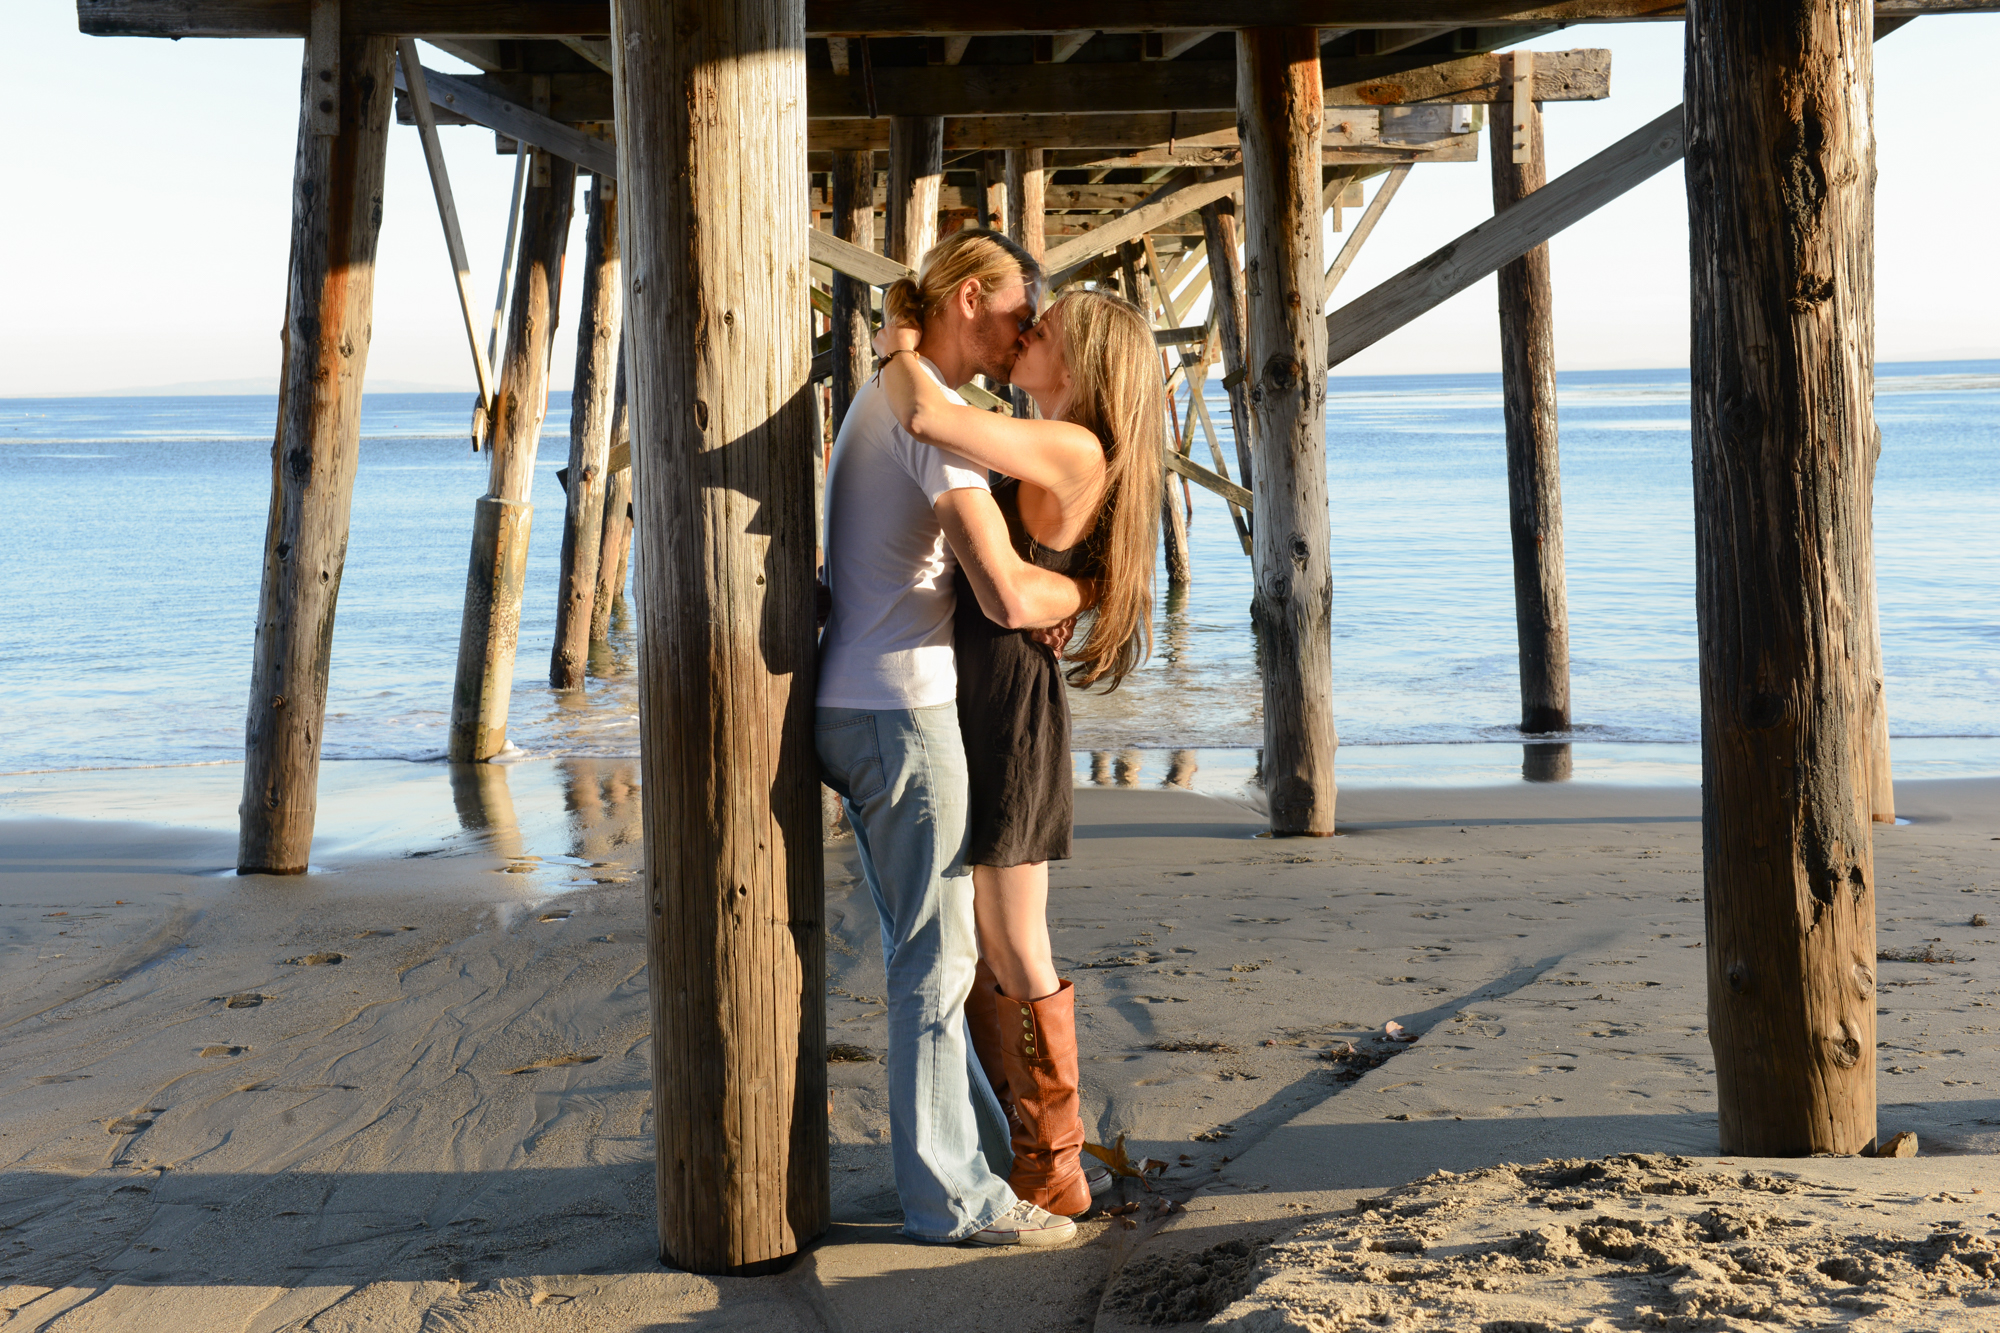 arthousephotographs.com | Los Angeles Engagement Photographer | Southern California and Destination Engagement Sessions | Arthouse Photographs